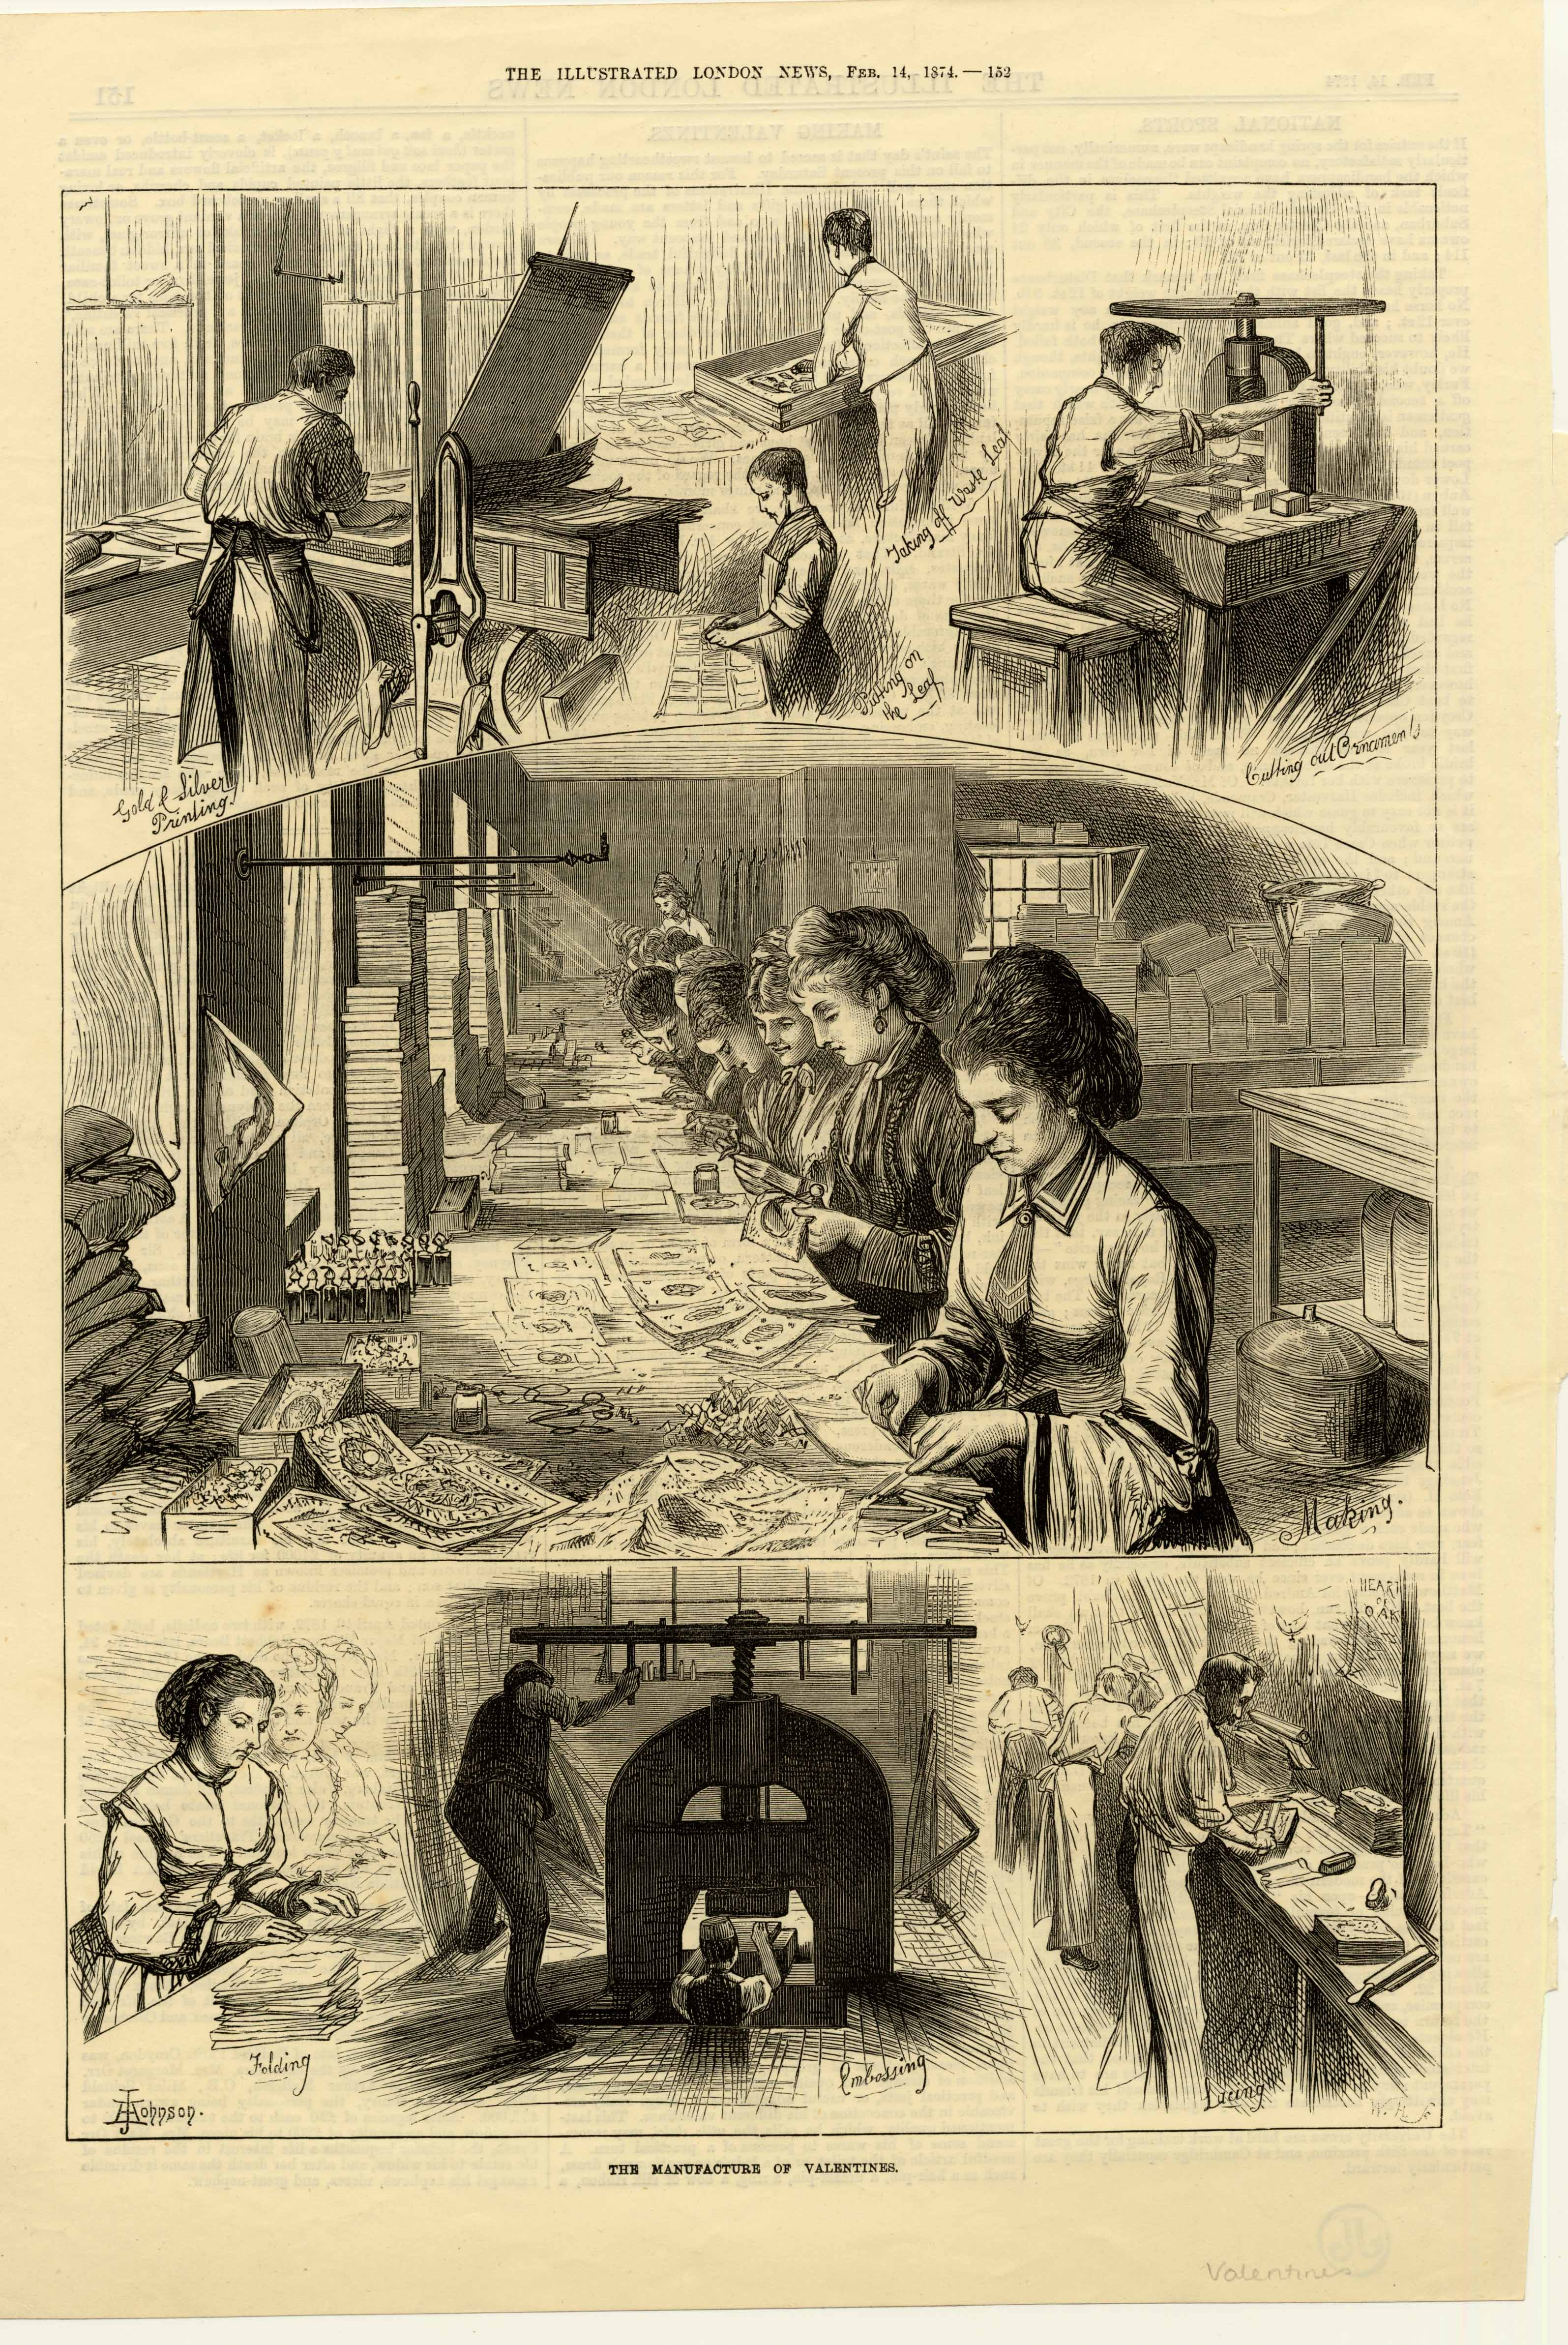 The Manufacture of Valentines. Illustrated London News 14 Feb 1787.